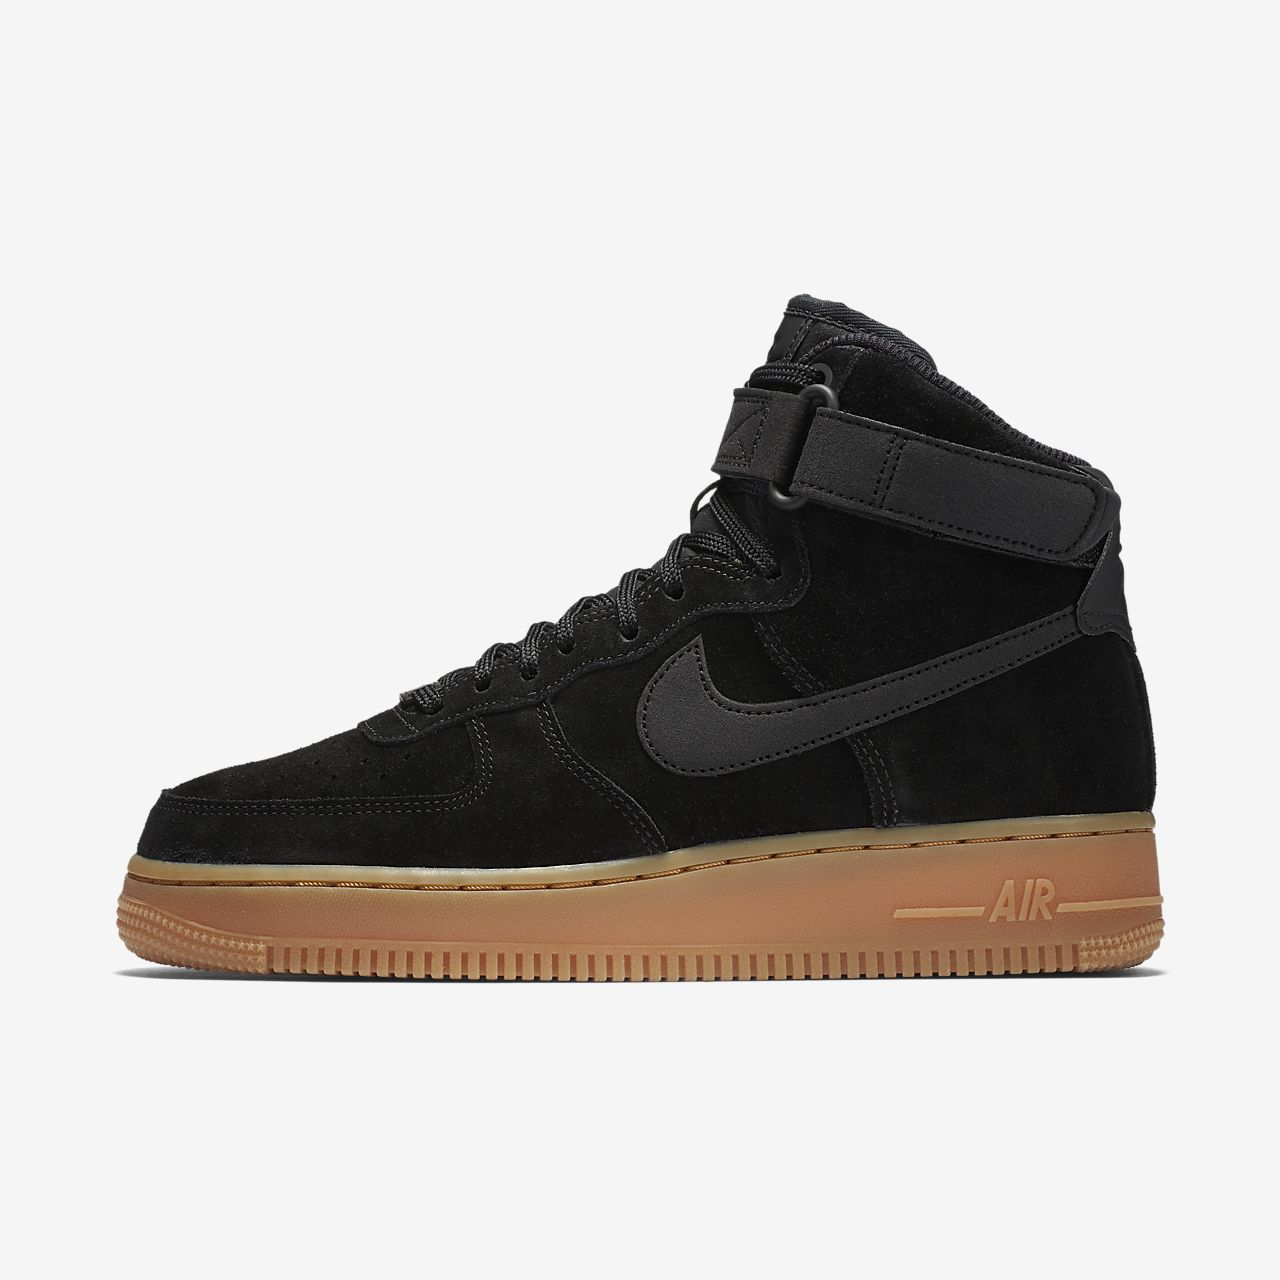 nike air force 1 black gum nz